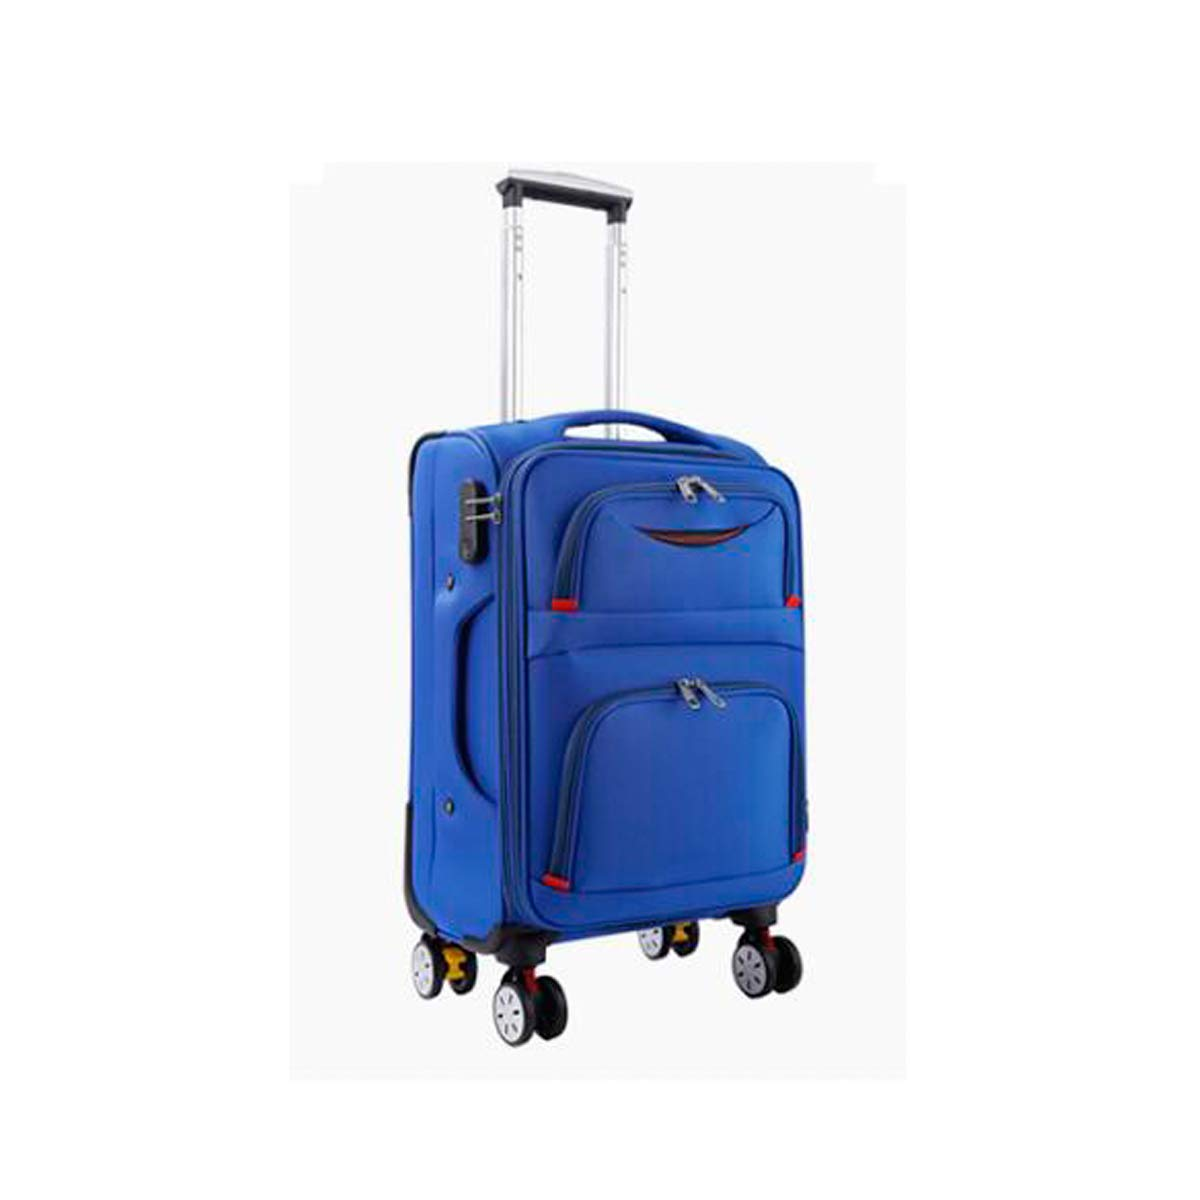 Trolley Case Travel Organizer Black Latest Style Carrying Case Best Gift Color : Brown, Size : 20 Simple Style 20//22//24 Shengshihuizhong Soft Rotating Luggage